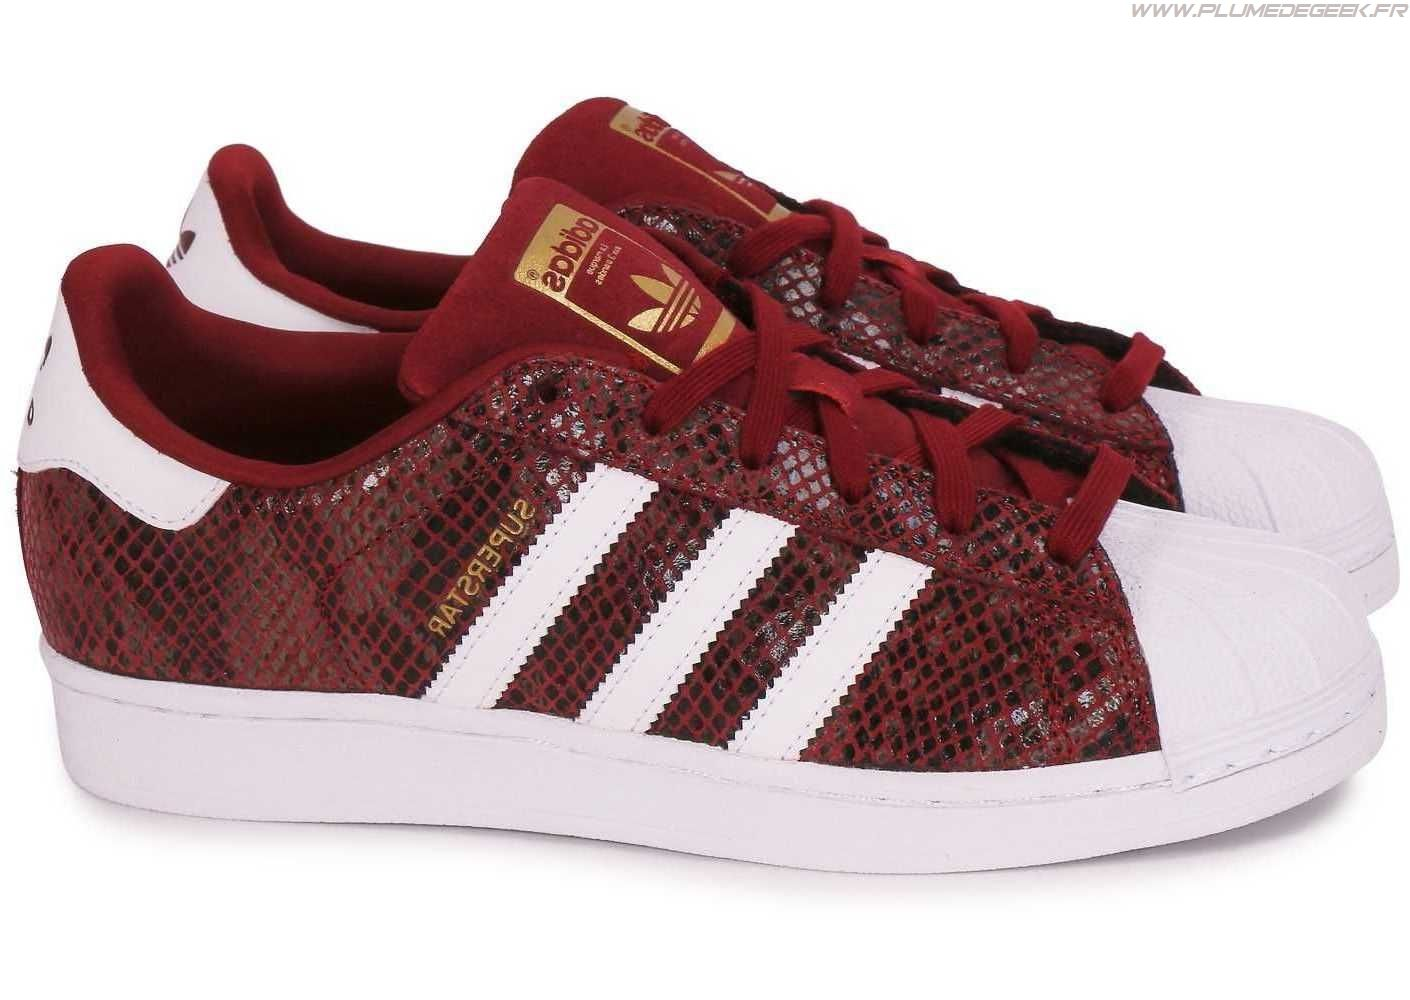 newest 38892 5ad5a Adidas Superstar Femme Rouge Bordeaux